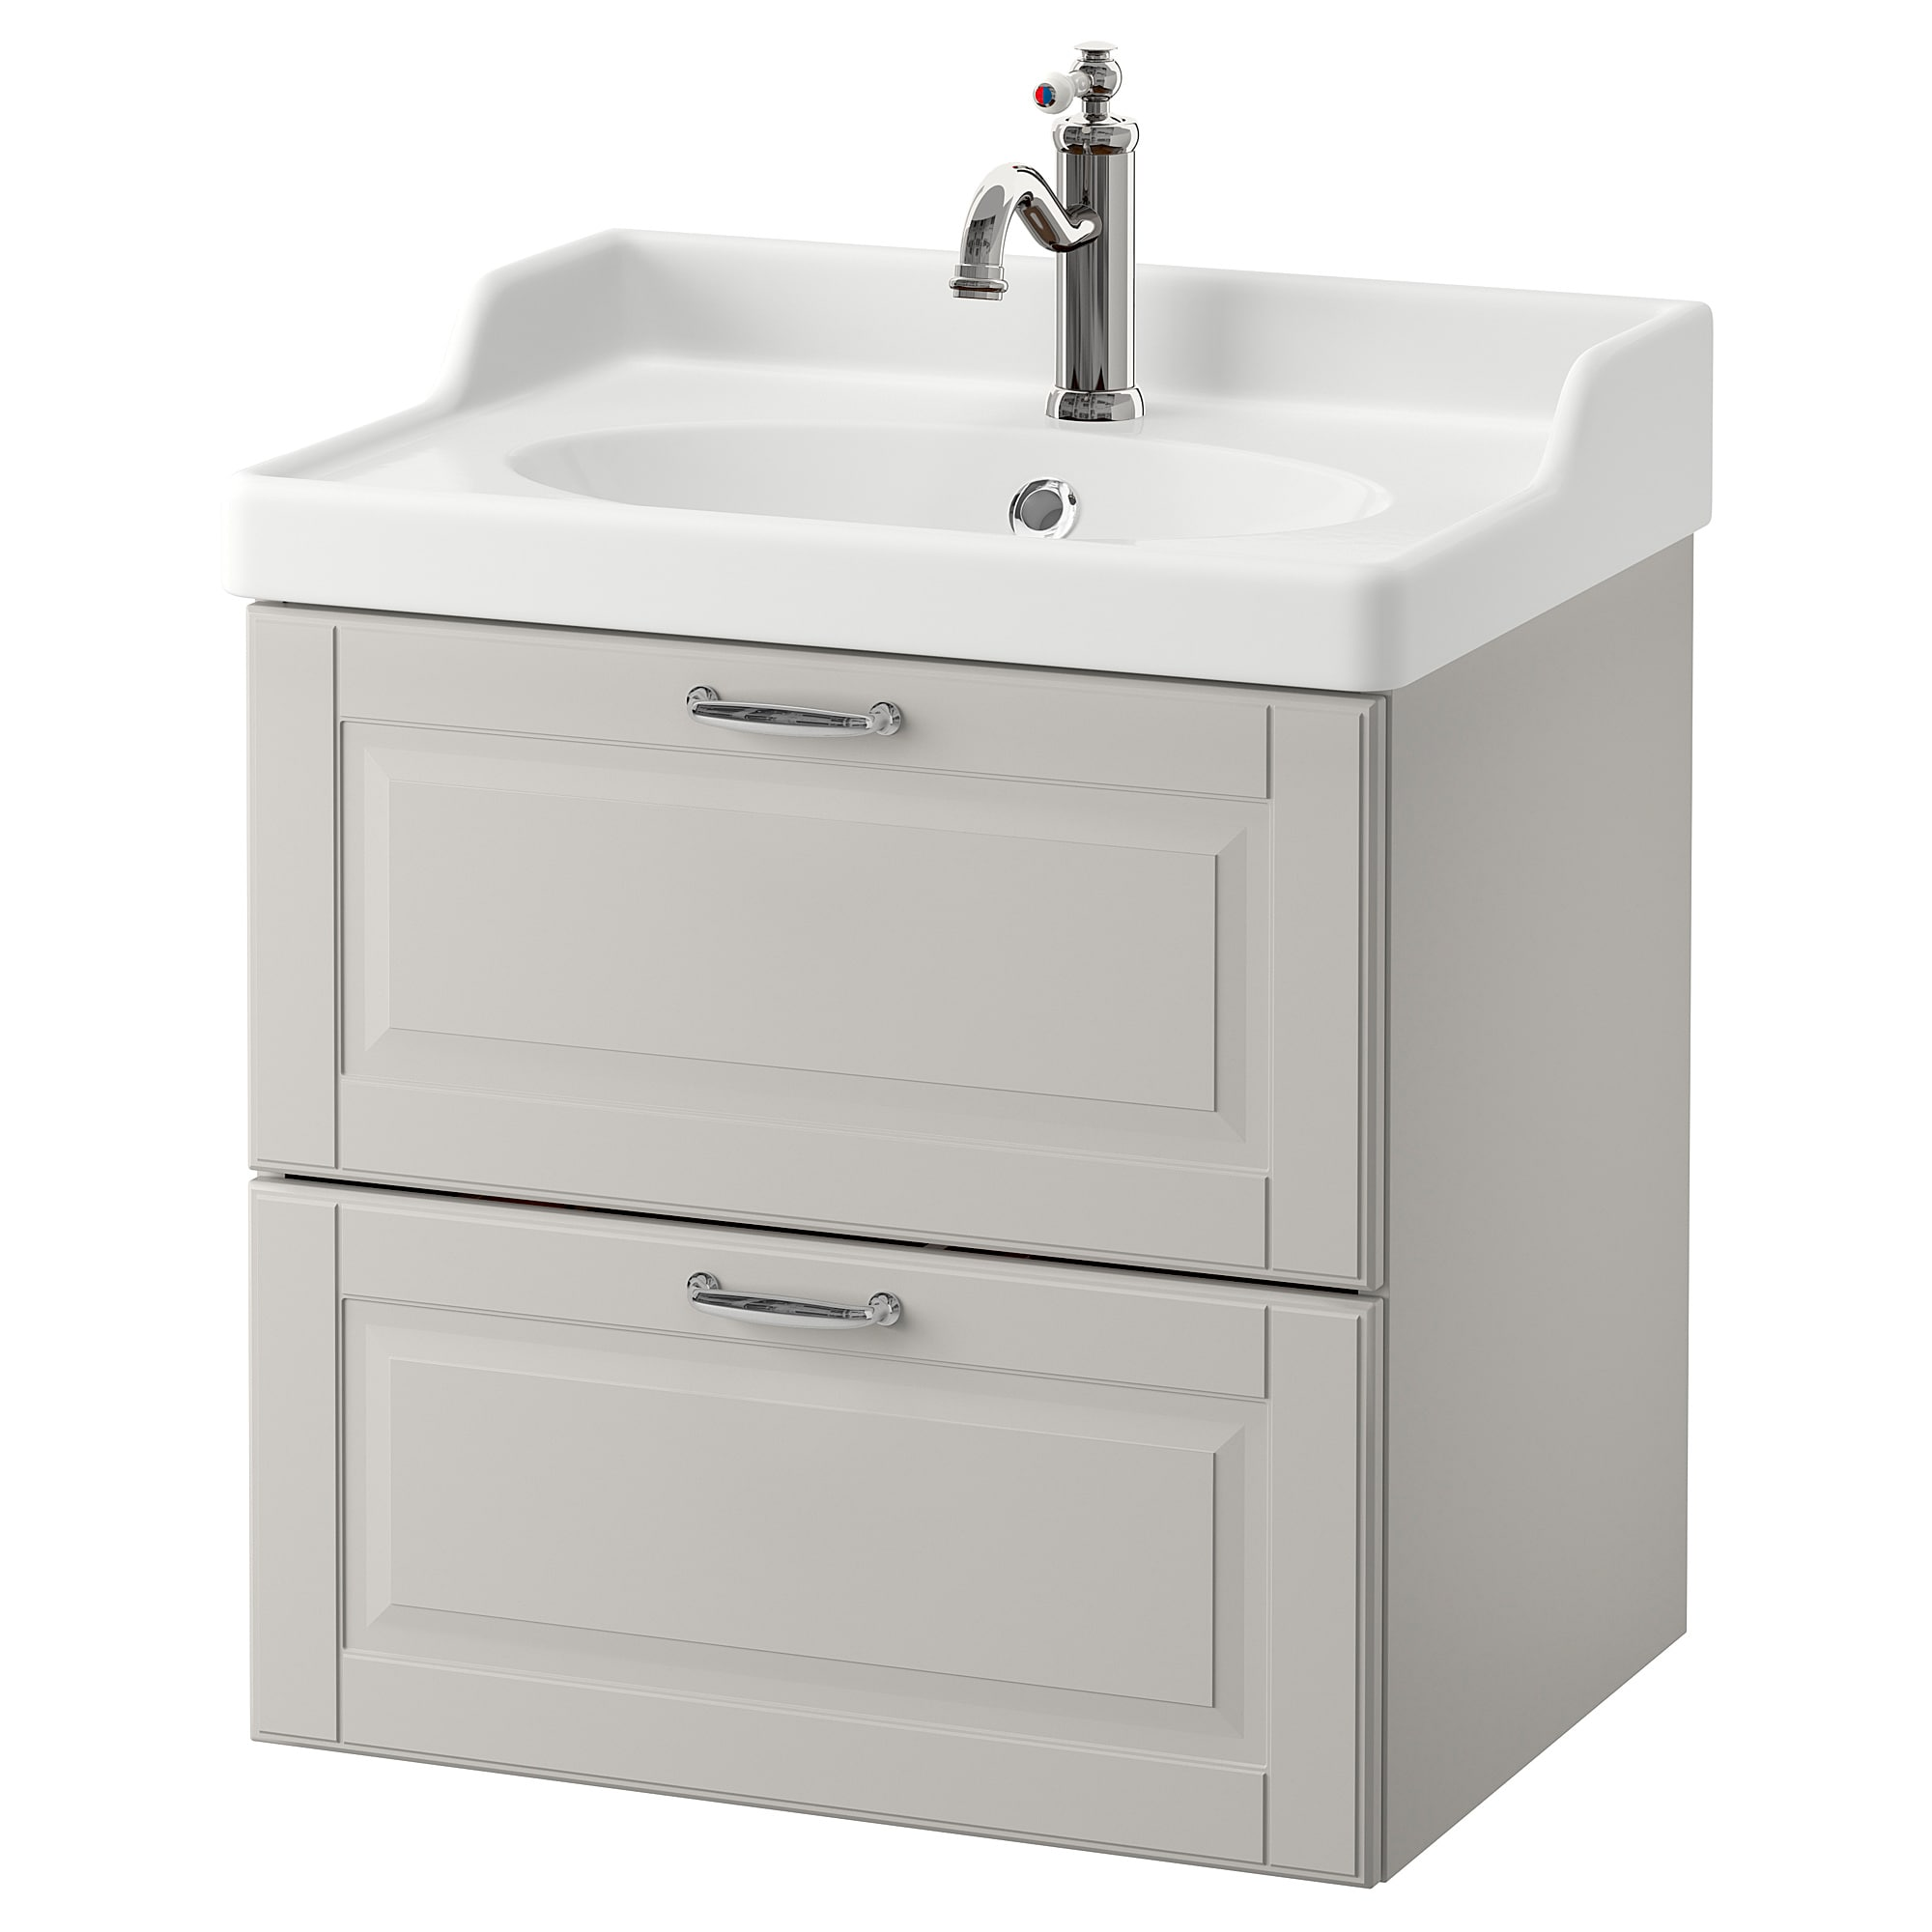 Us Furniture And Home Furnishings Home Depot Bathroom Vanity